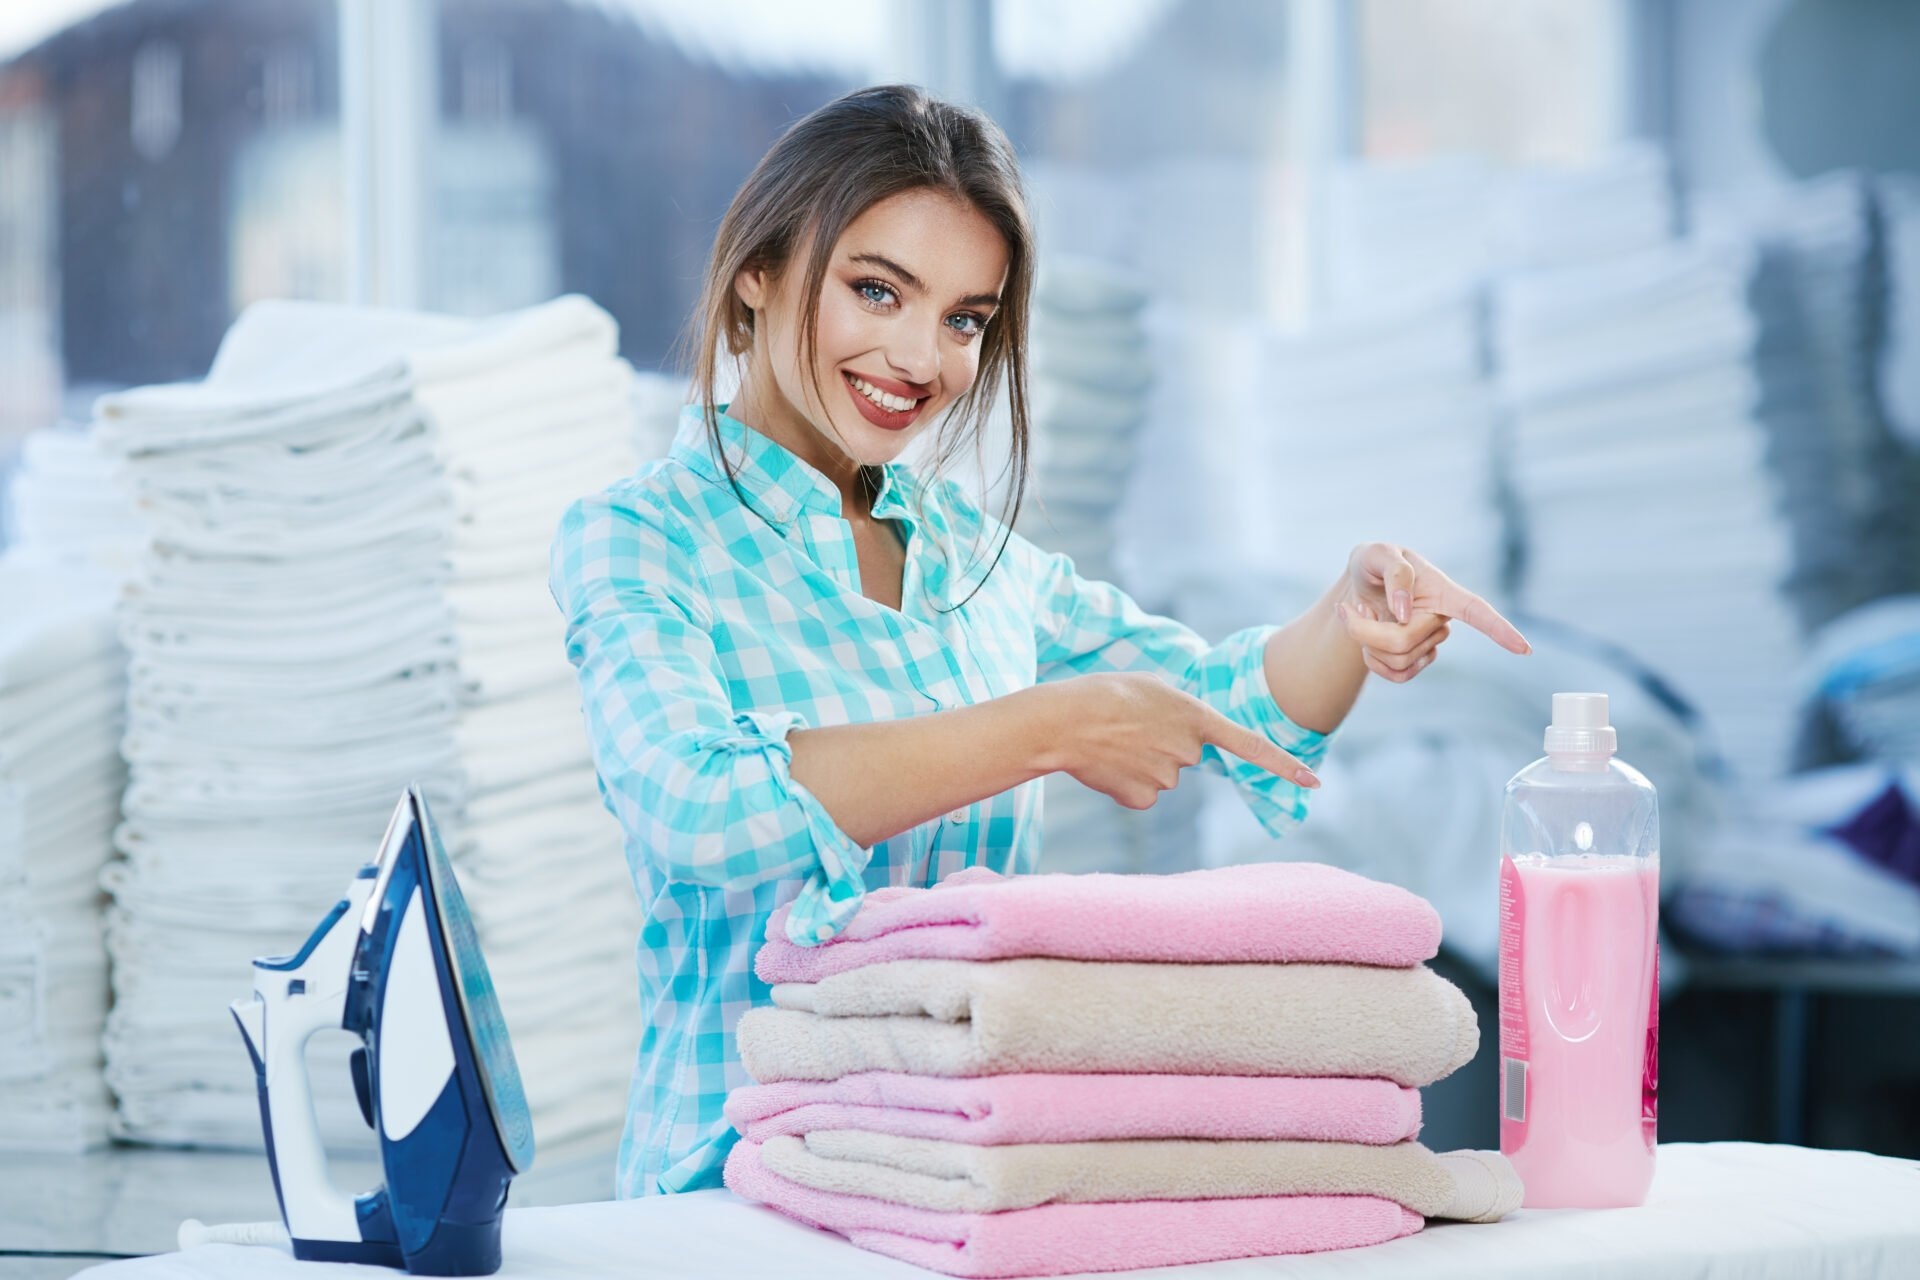 Woman standing near heap of rose towels and smiling. Woman near ironing board and detergent, heaps of white linen behind. Girl pointing at detergent